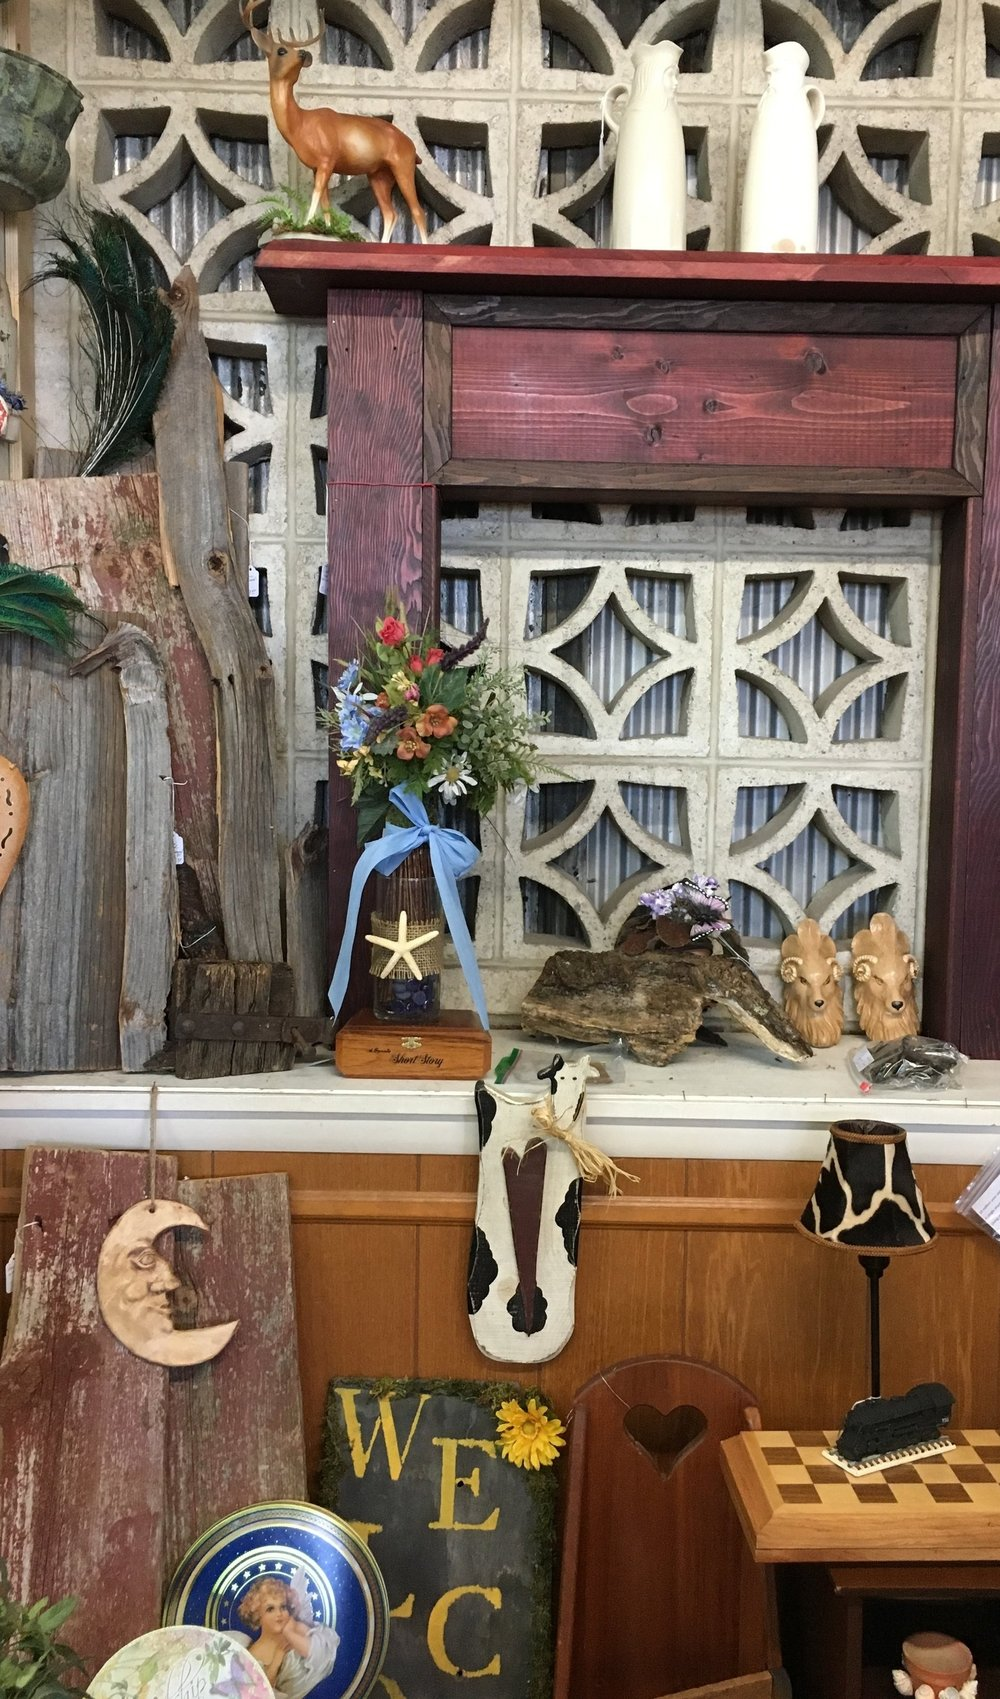 High Rock House - Barn/Country-style Decor & Collectibles!